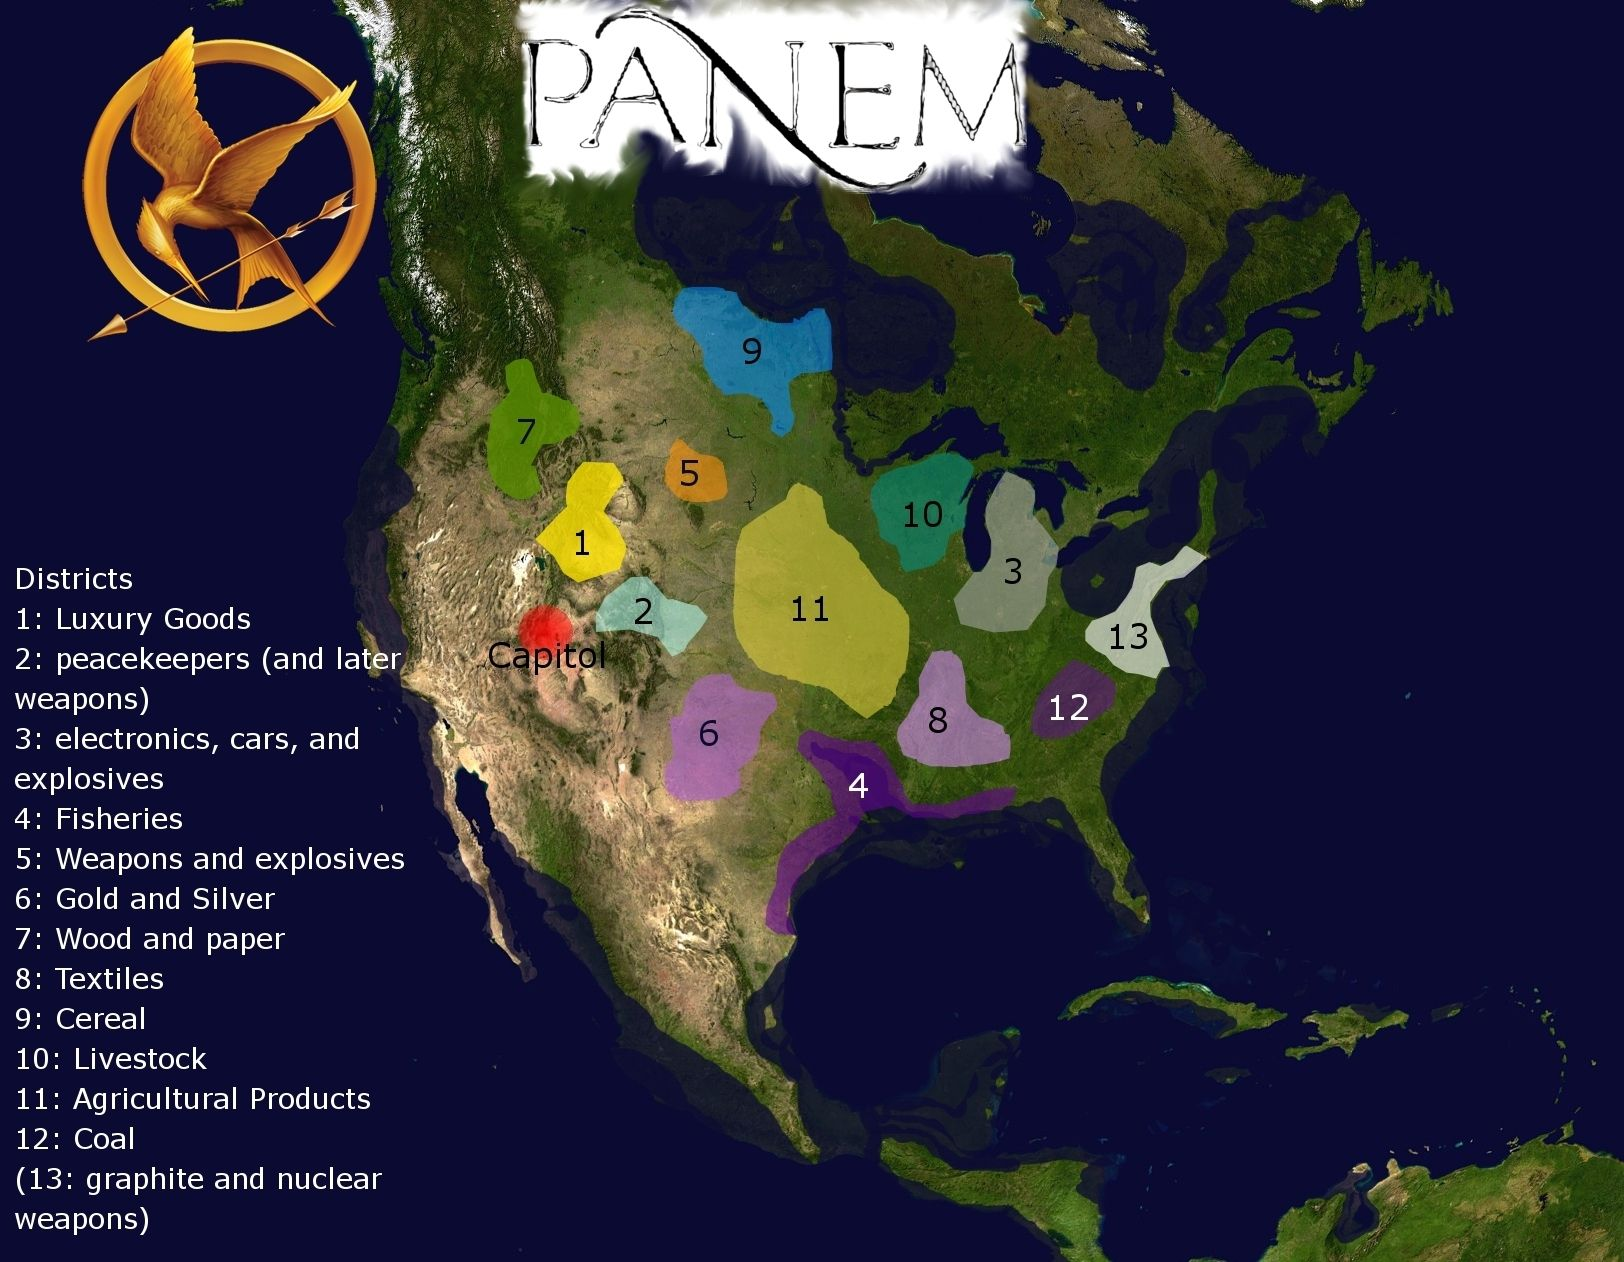 Map Of Panem By Suzanne Collins | The Hunger Games by ...